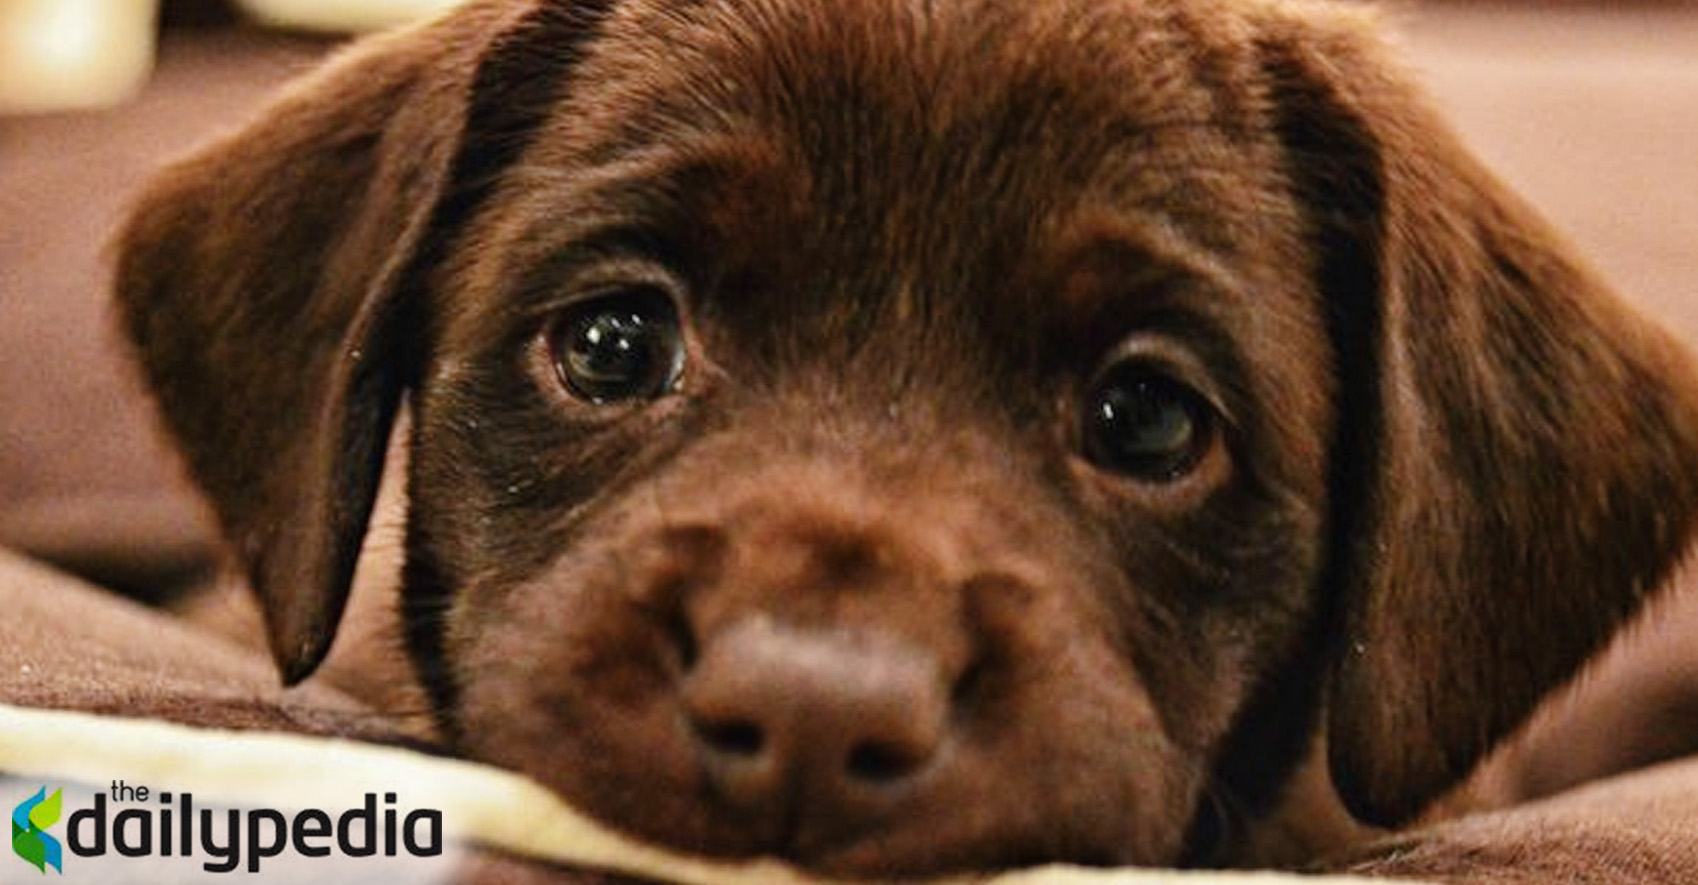 Cute Puppy Dog Eye Gifs